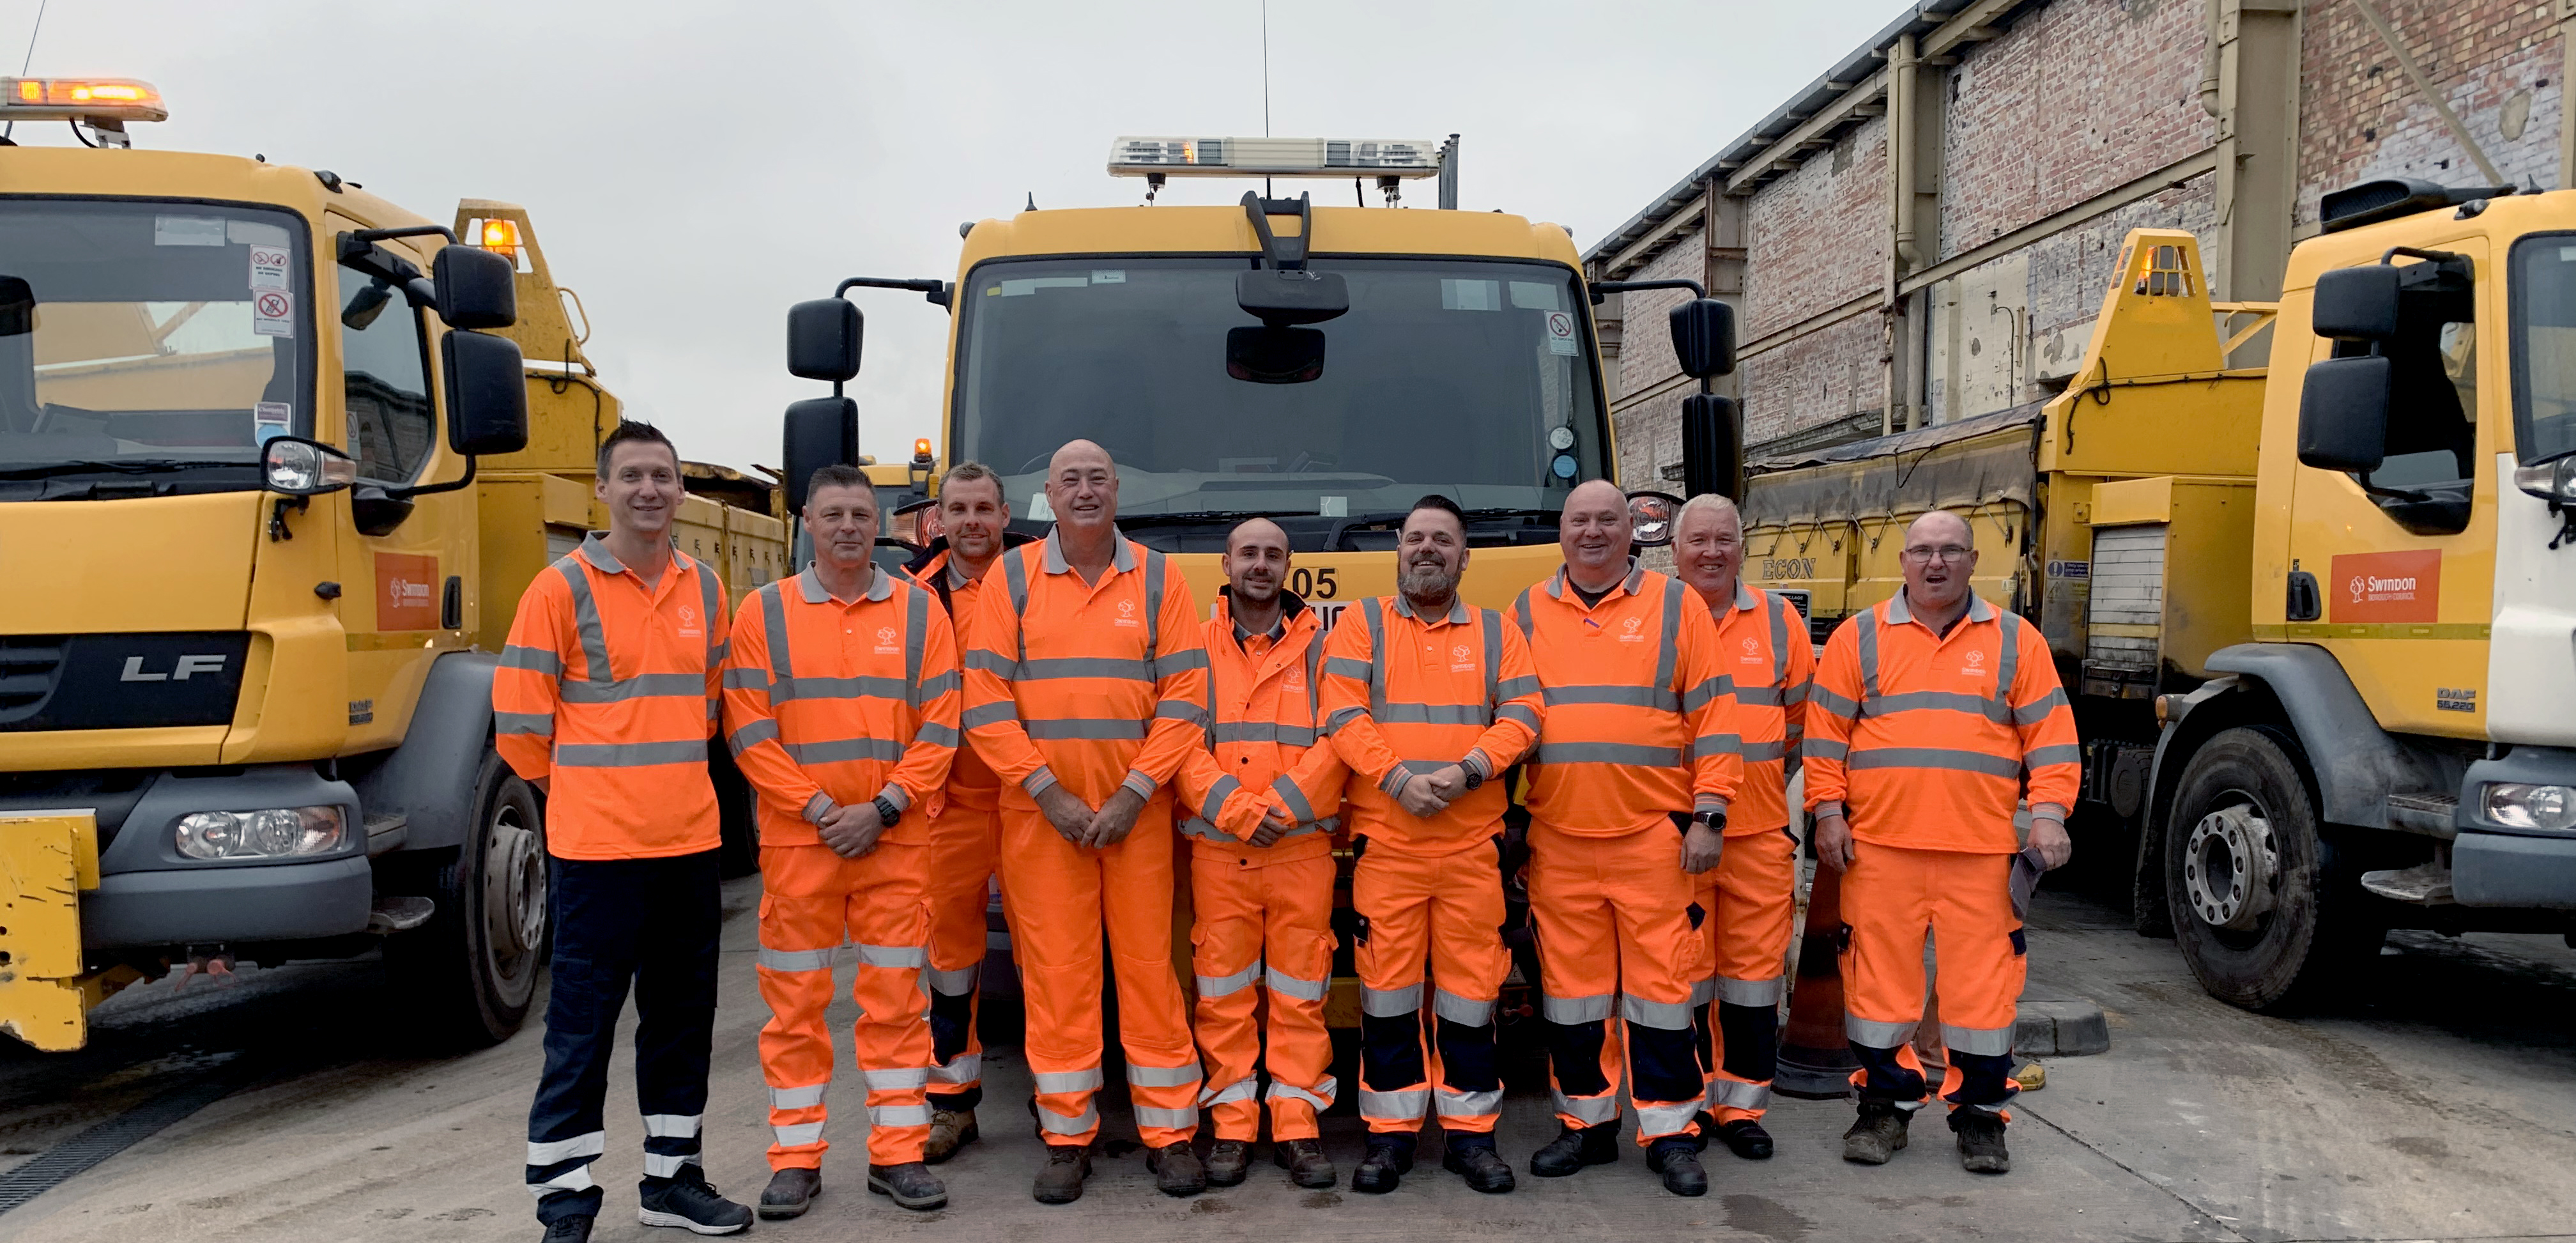 Swindon Borough Council's road gritting crew